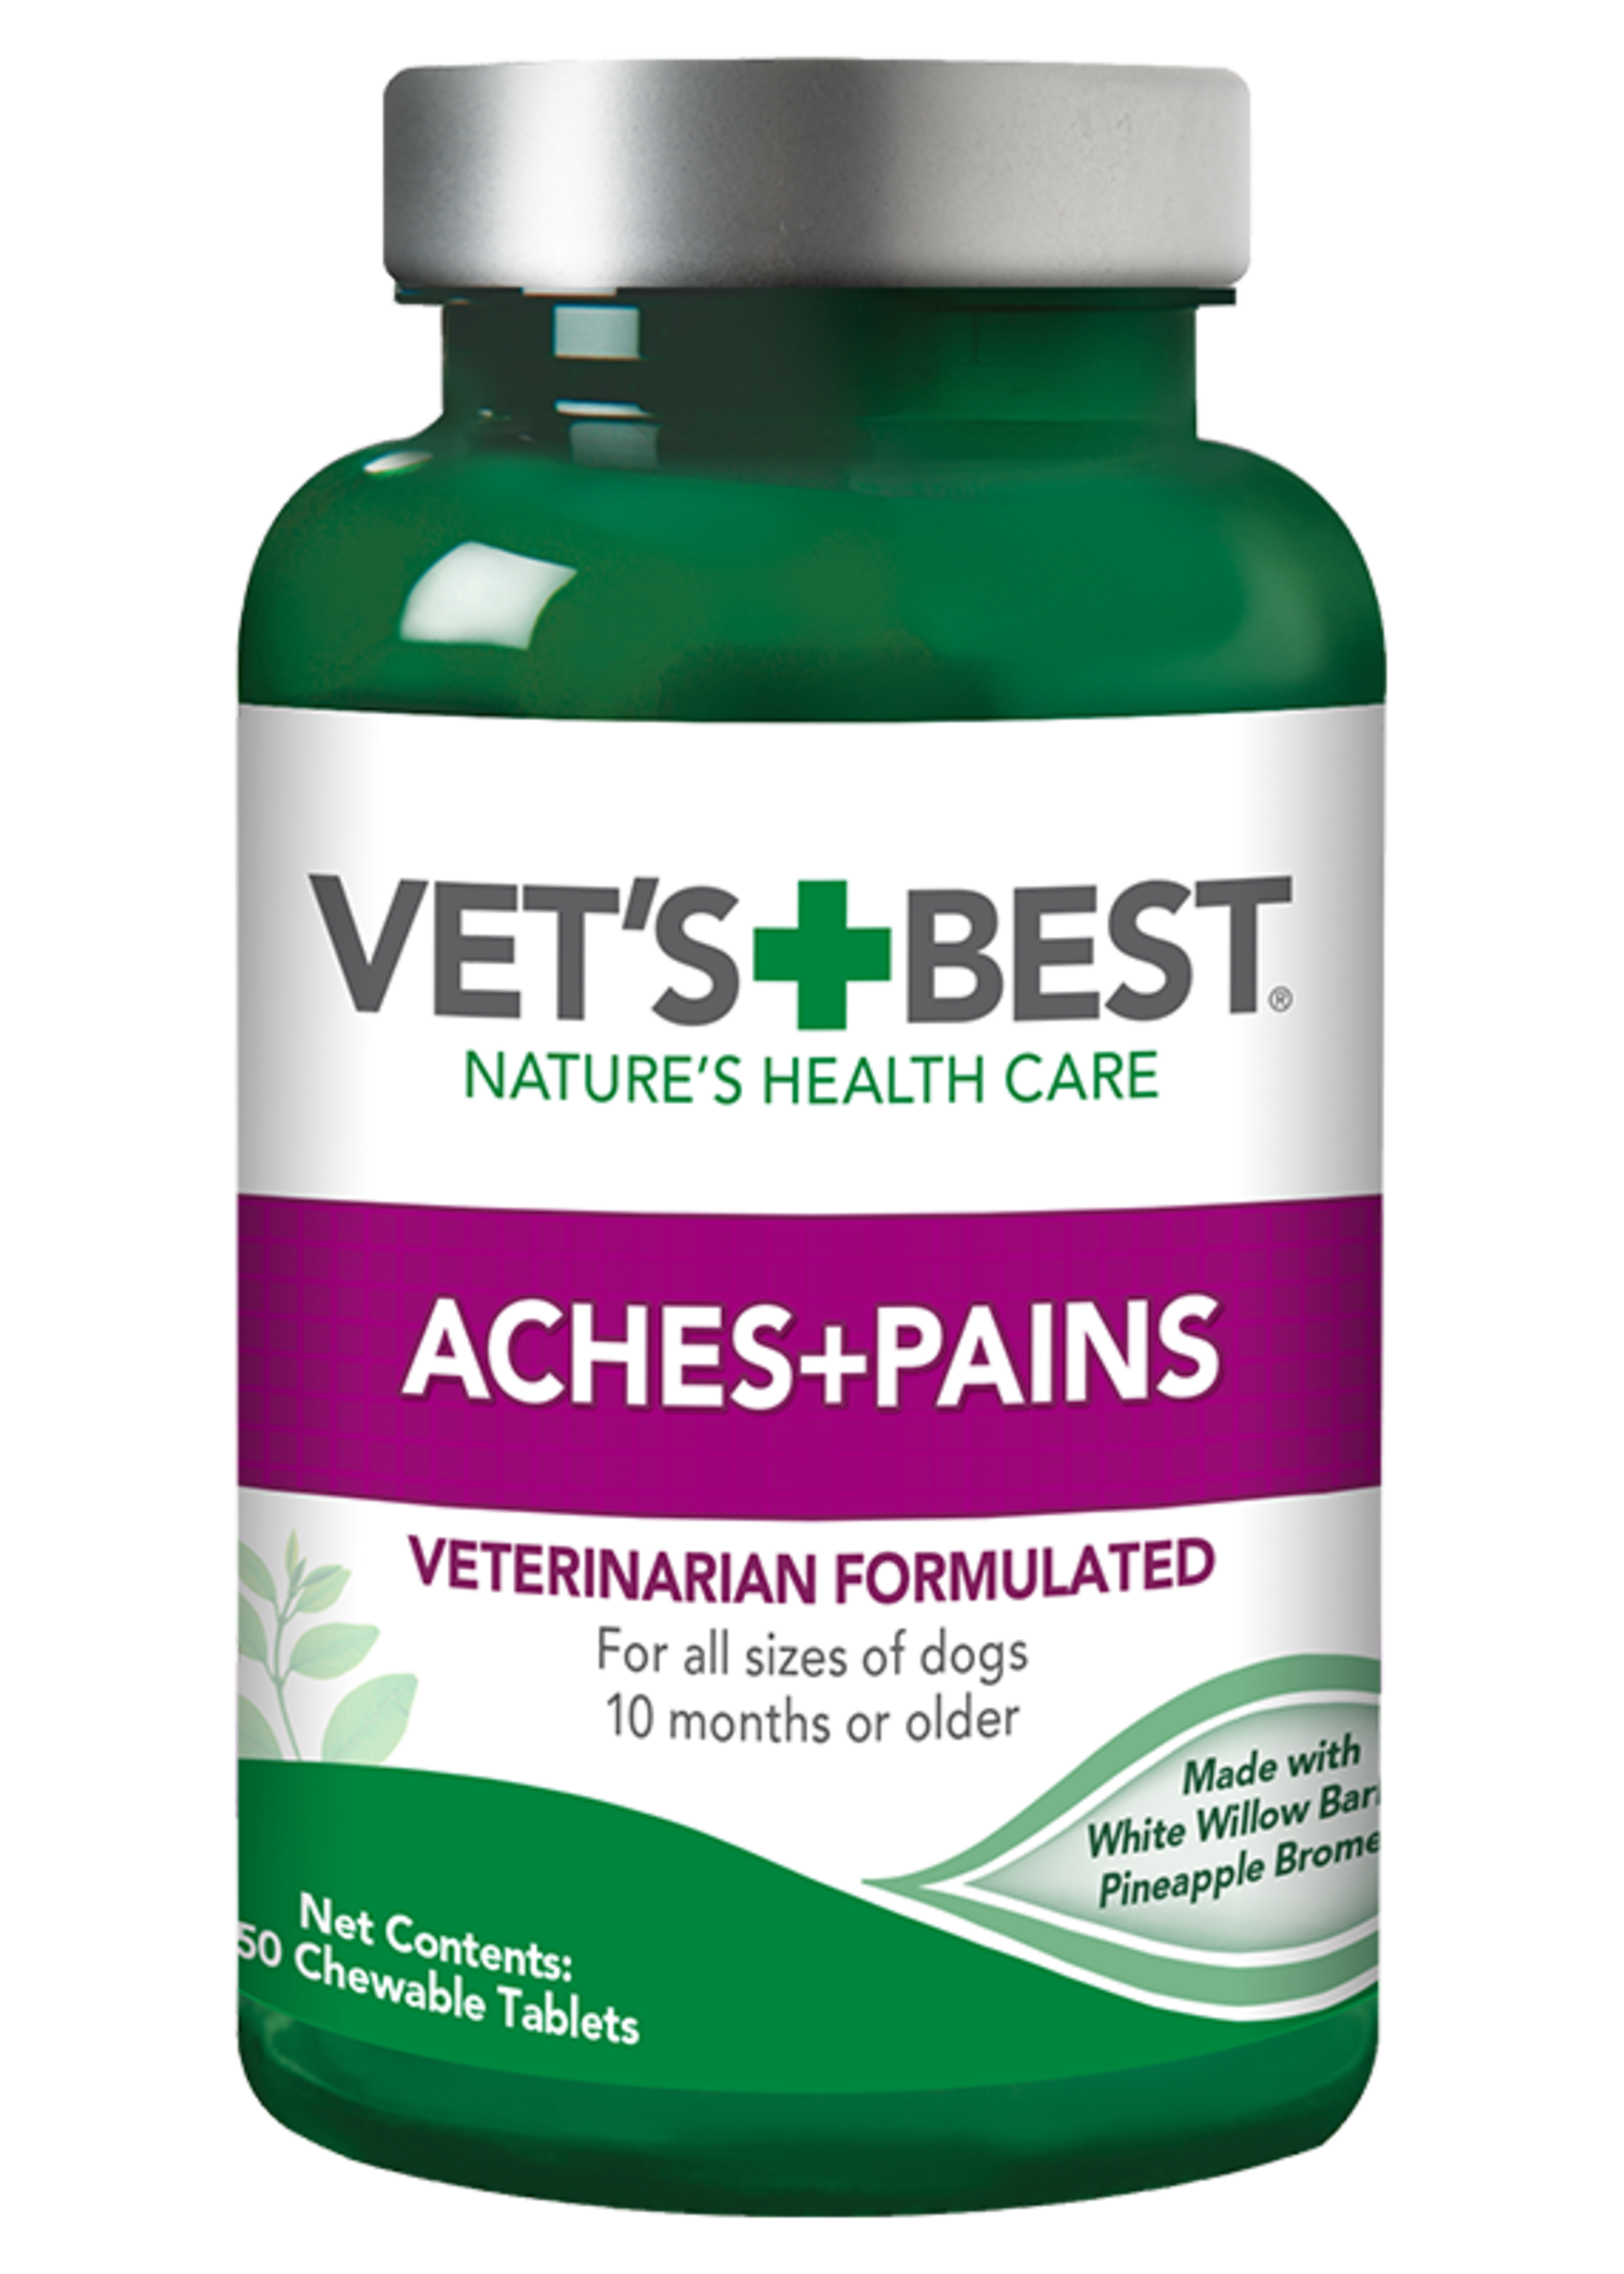 Vet's Best Vet's Best Dog Remedy Aches and Pains 50 ct